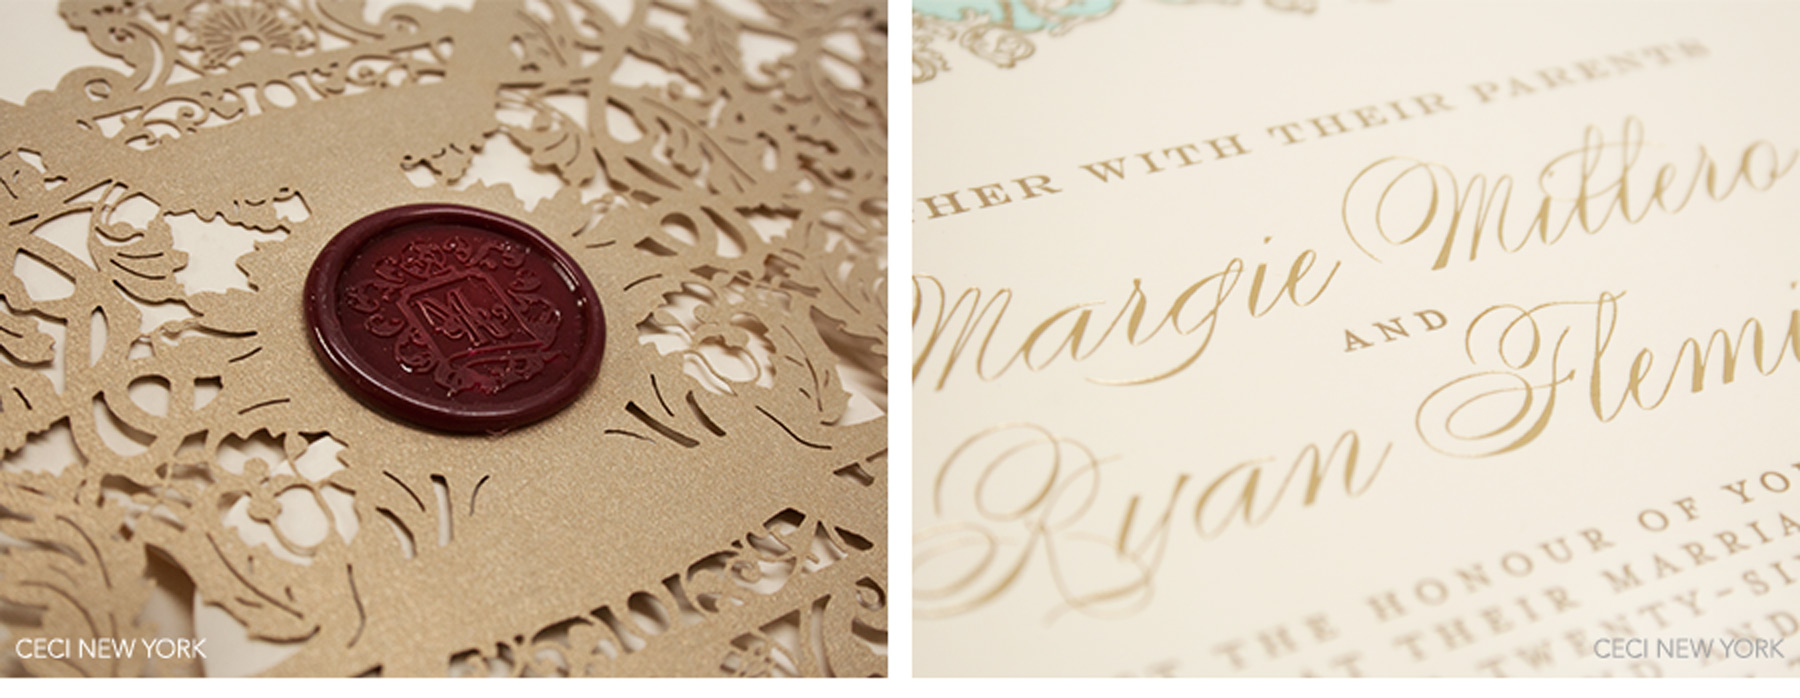 Luxury Wedding Invitations by Ceci New York - Our Muse - Luxurious Lake Como, Italy Wedding - Be inspired by Margie & Ryan's luxurious Lake Como wedding in scenic northern Italy - Ceci New York Luxury Wedding Invitations - lake como, wedding, ceci new york, invitations, save-the-dates, luxury invitations, passport, teal, ivory, wax seal, letterpress printing, custom envelope, map, maroon